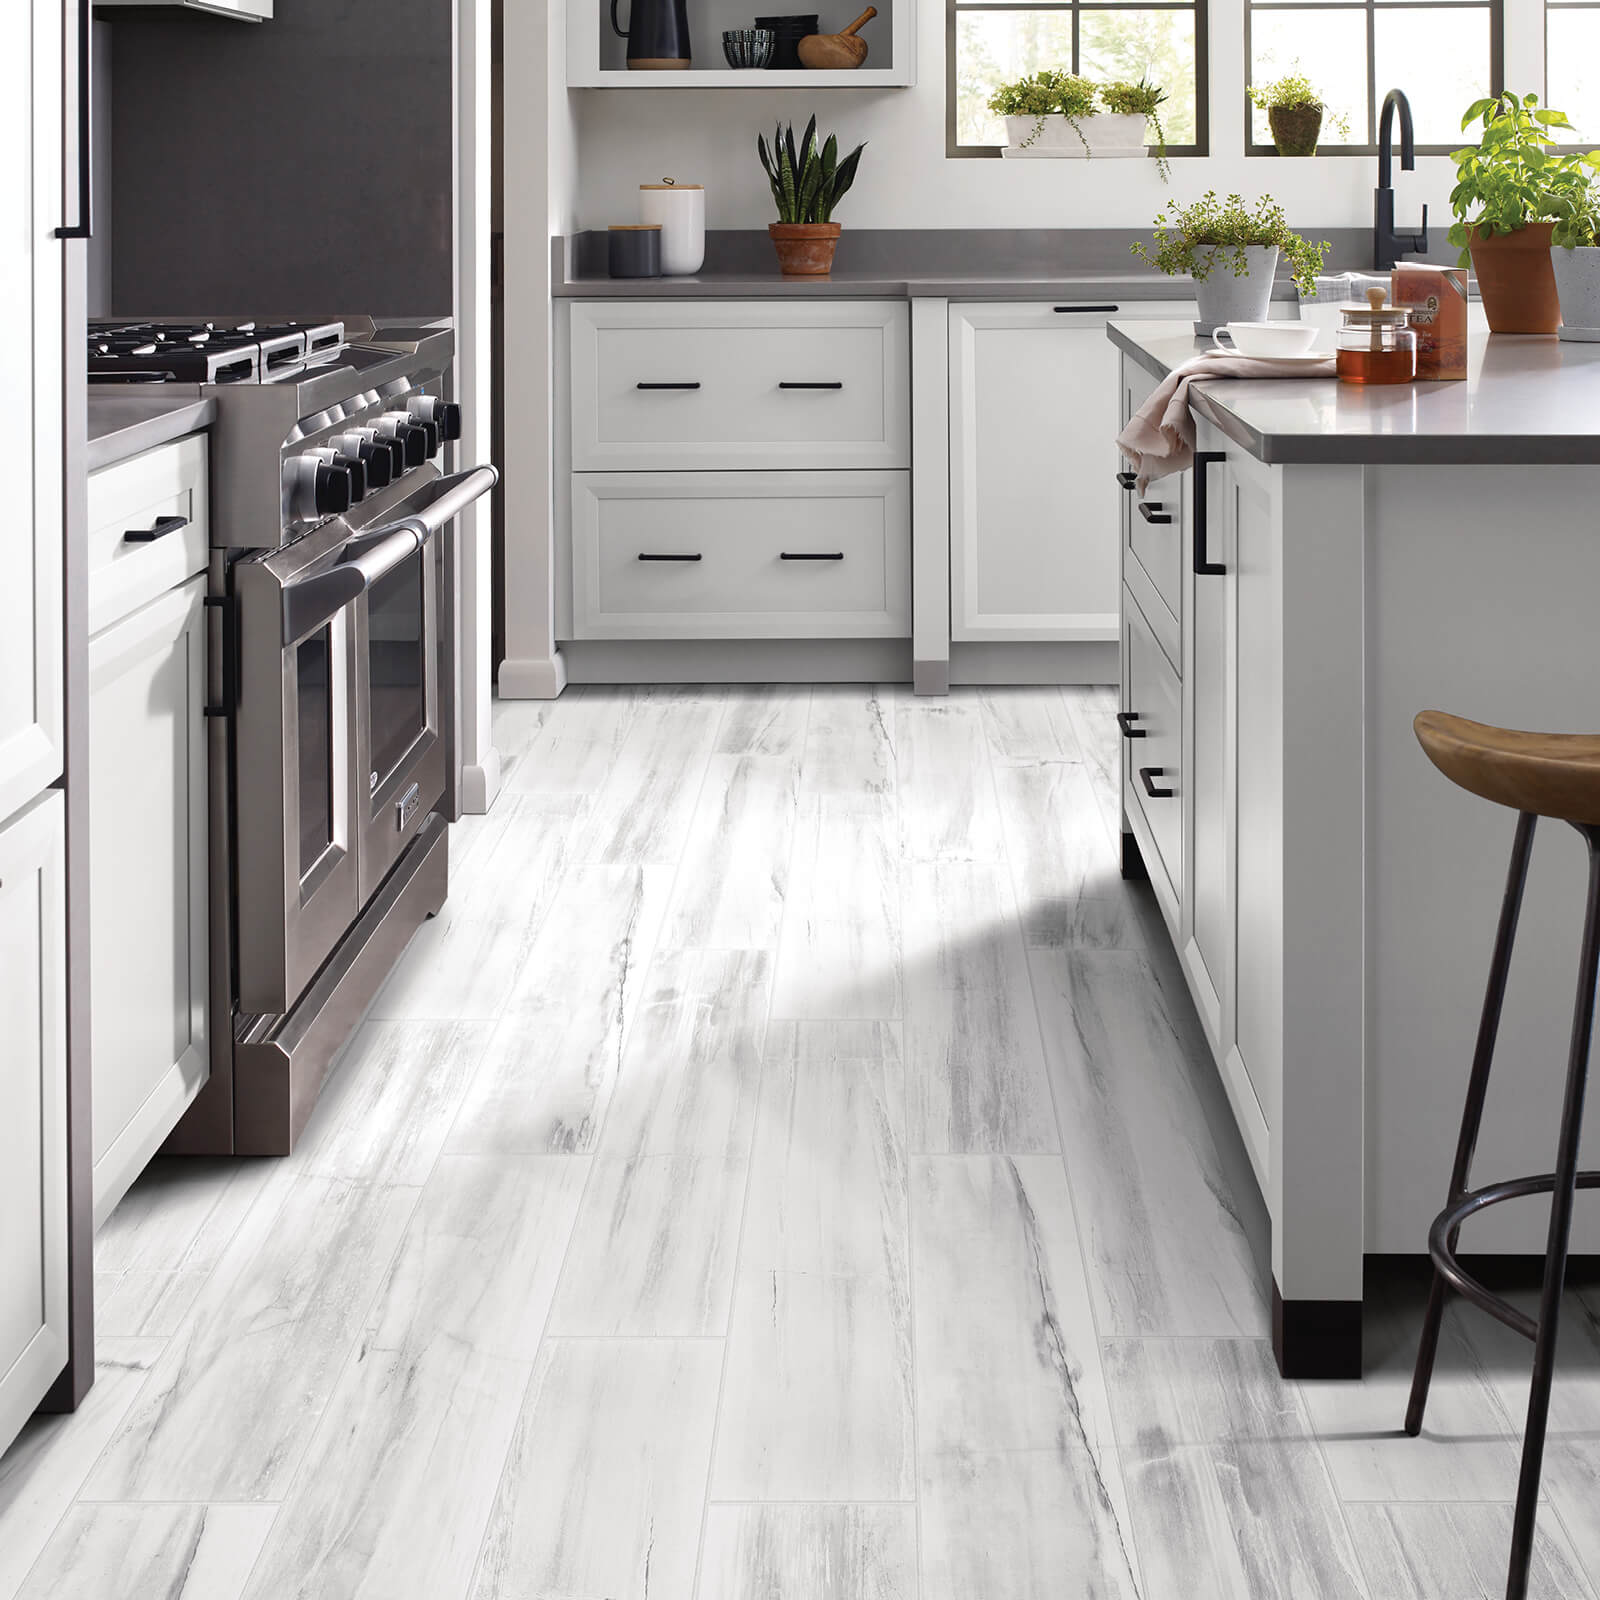 Kitchen cabinets | Great Floors